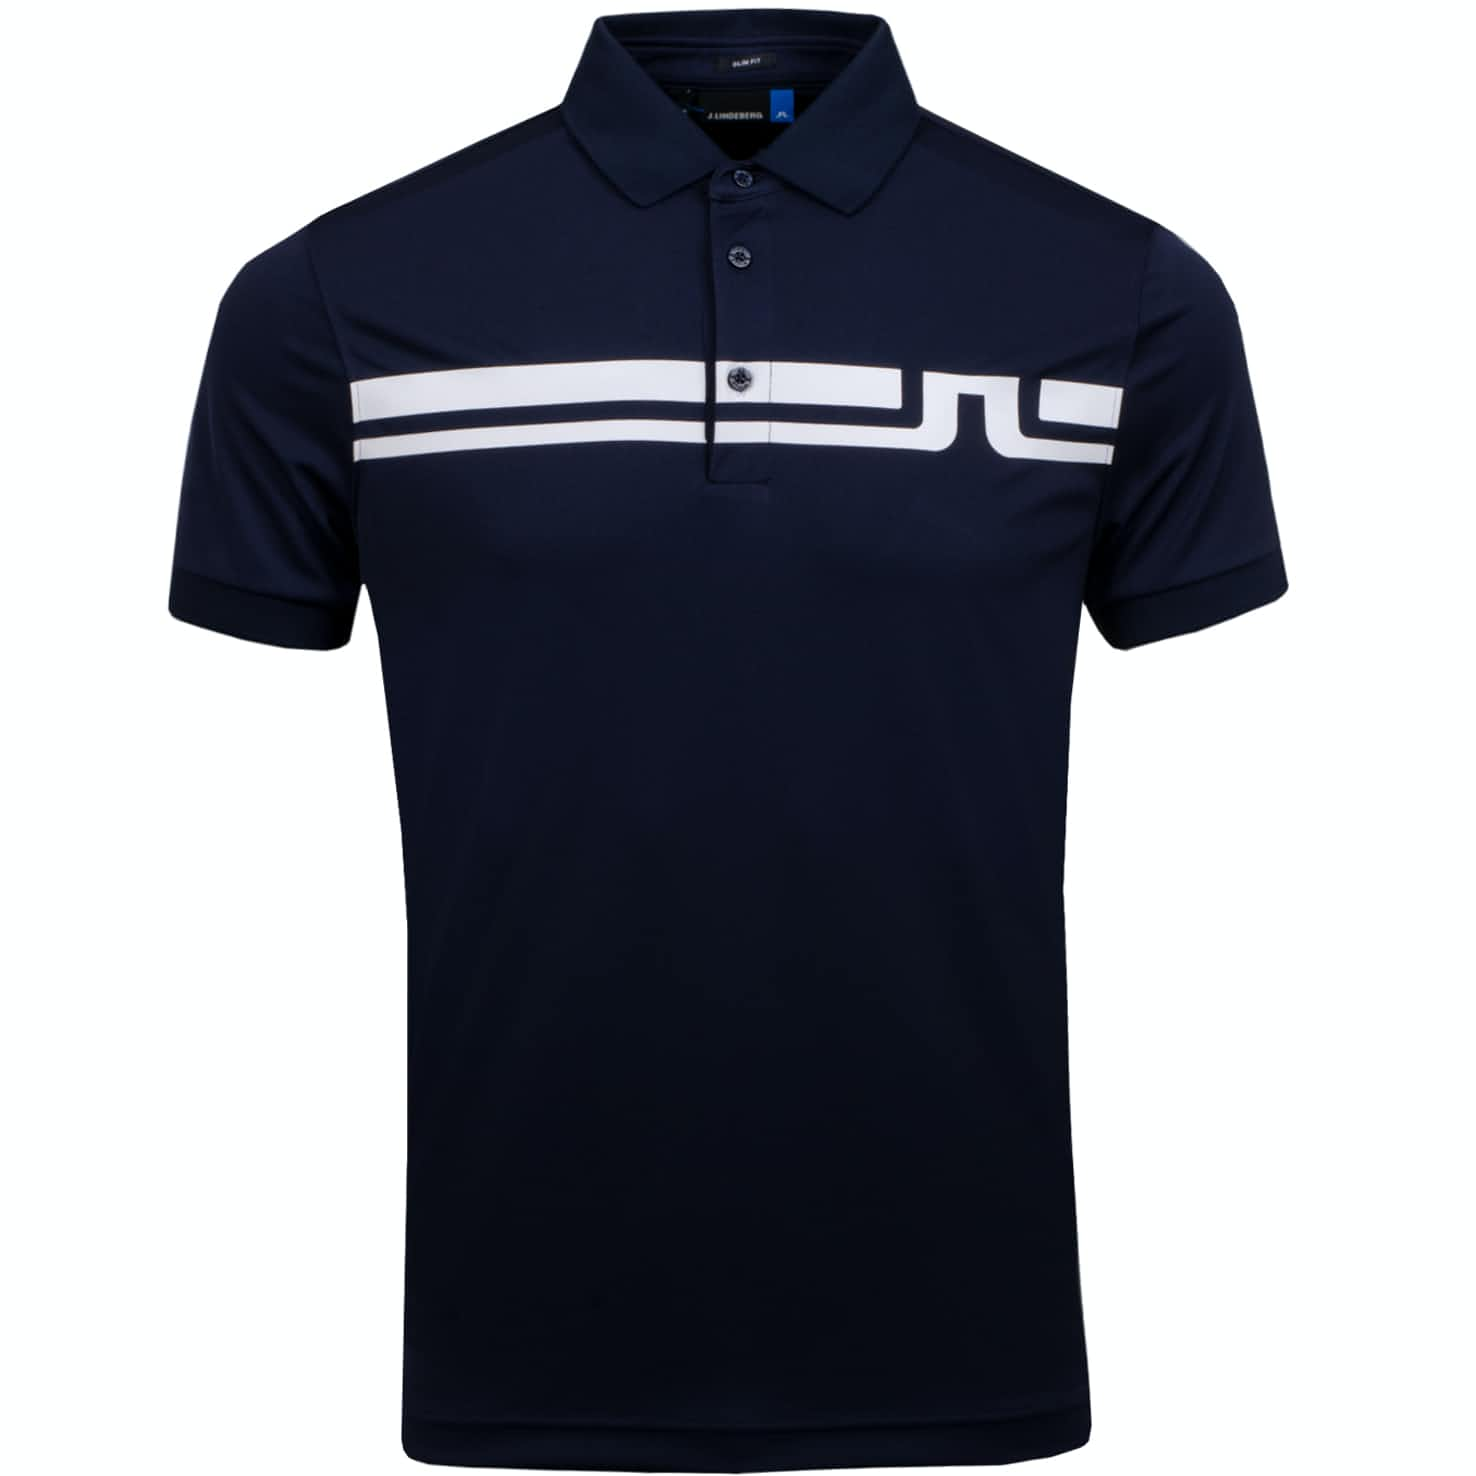 Eddy Polo Slim Fit TX Jersey JL Navy - AW19